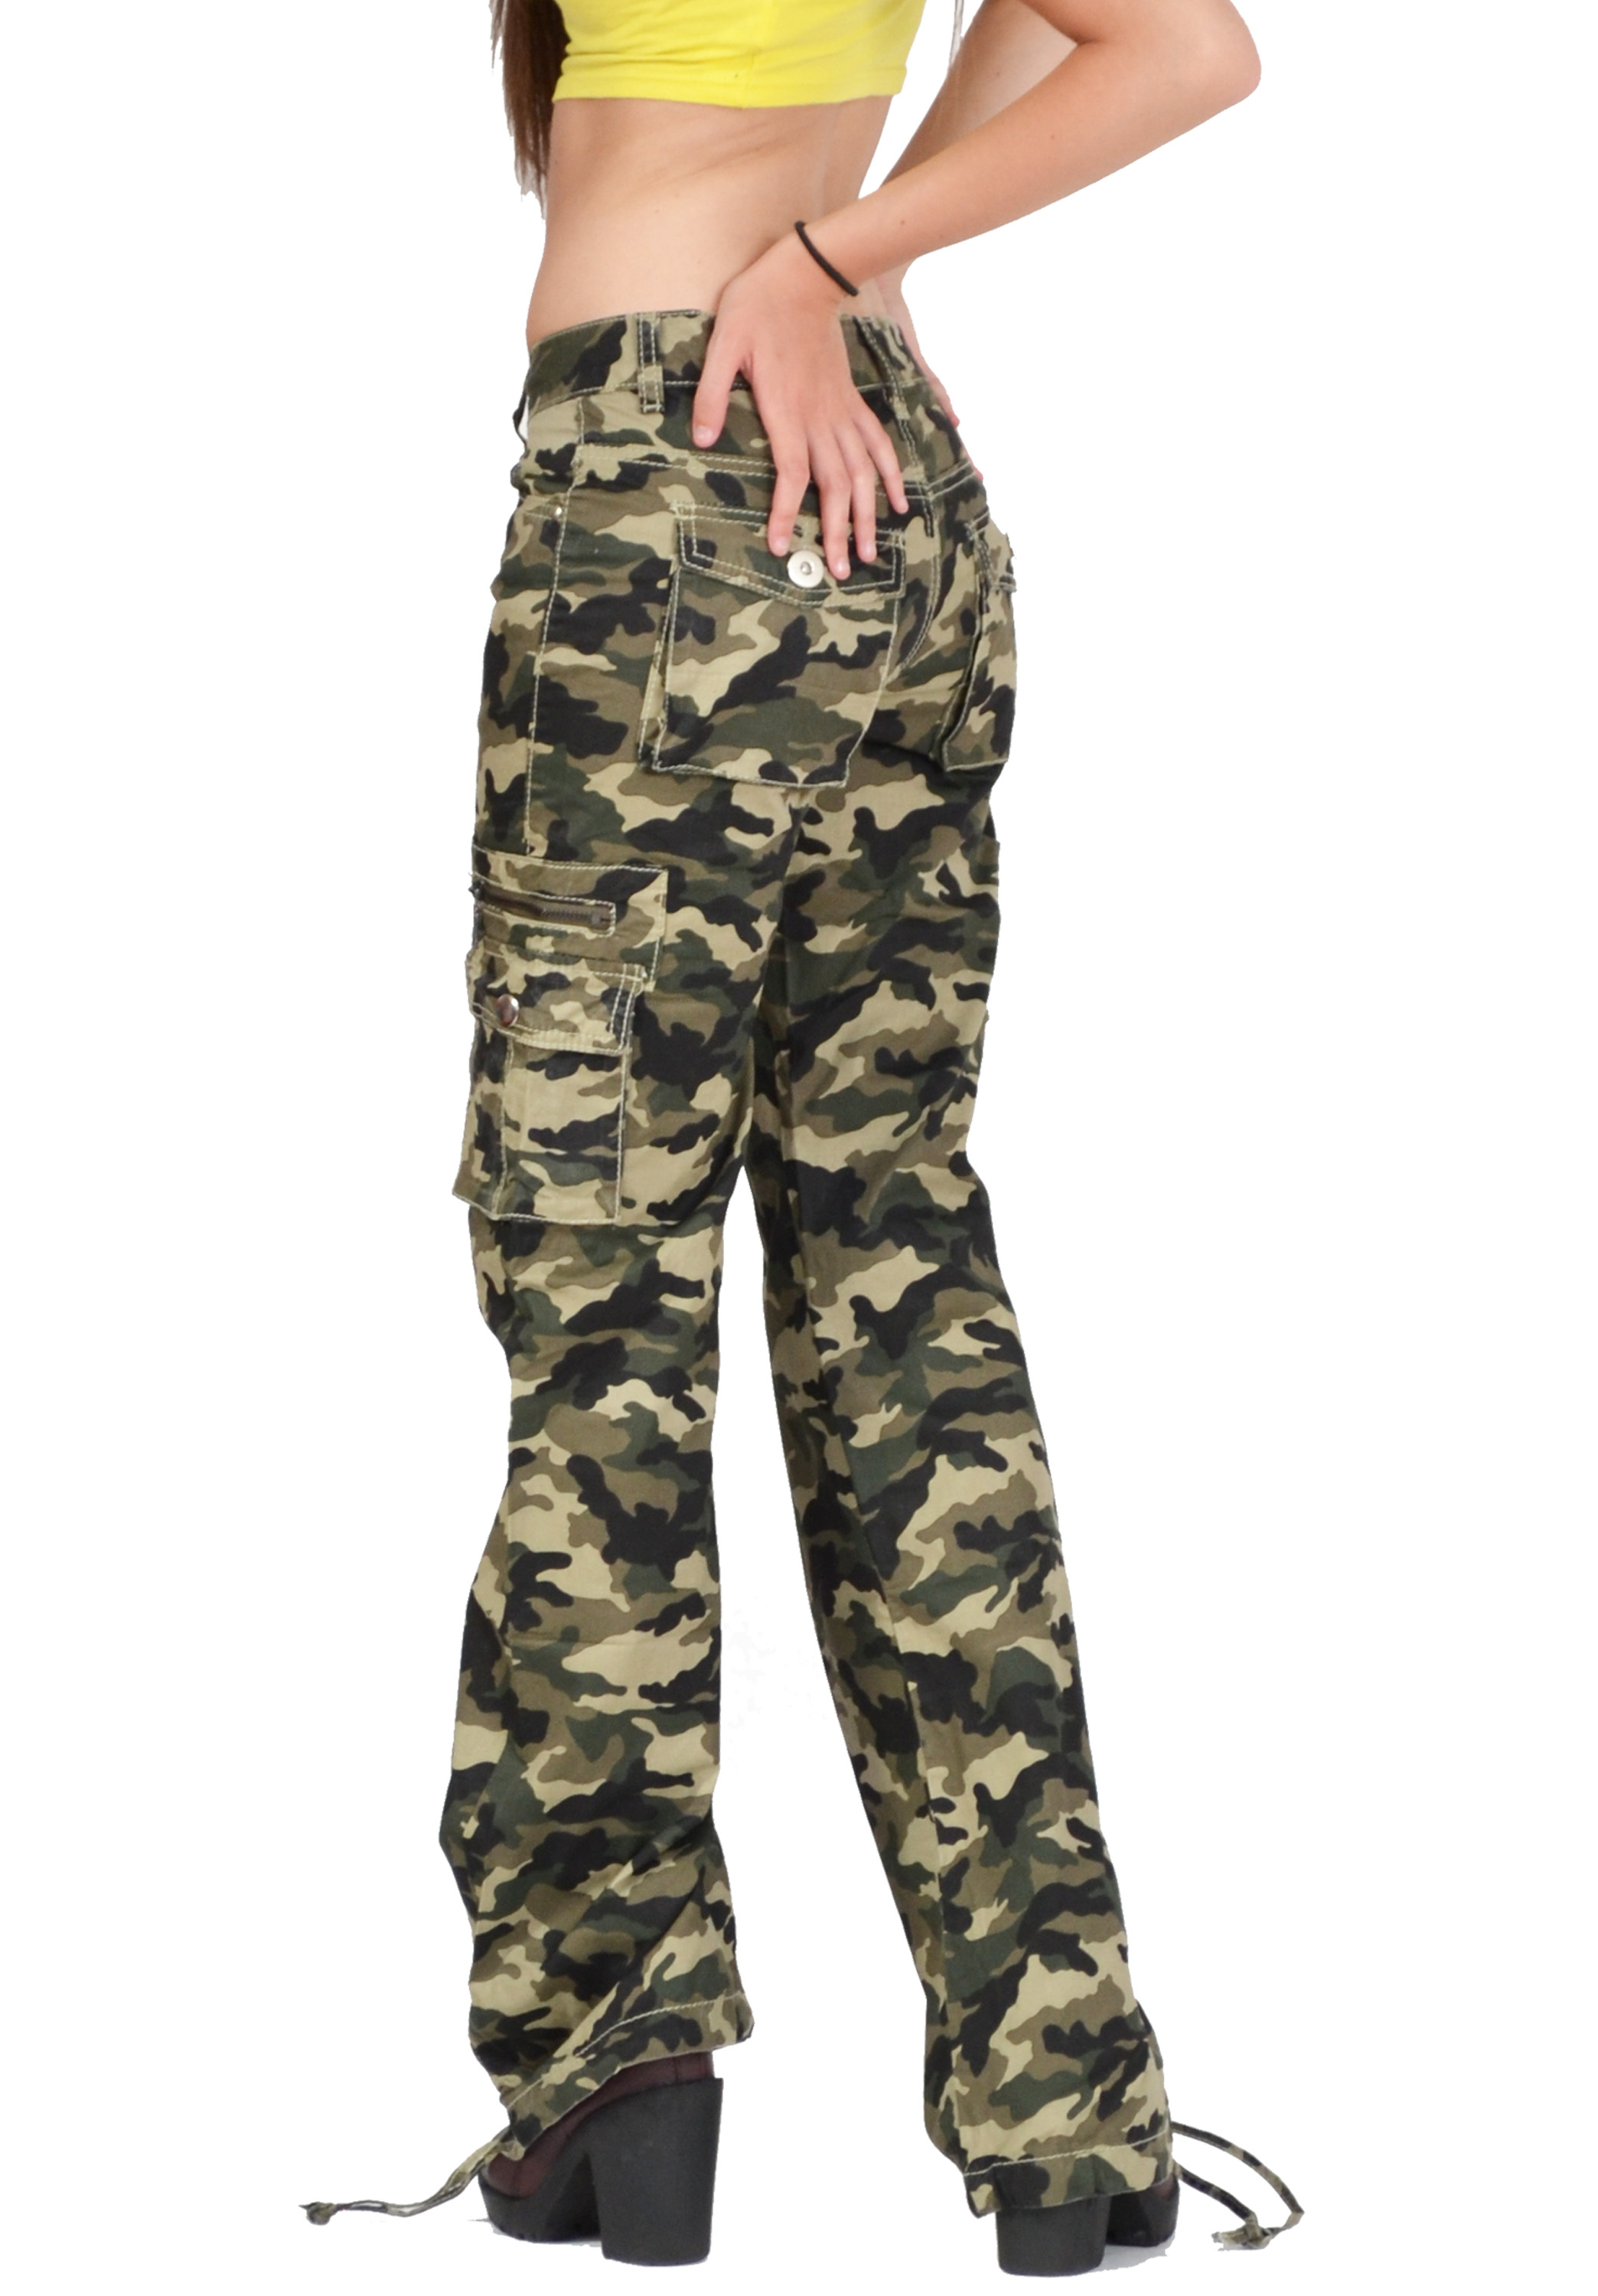 Brilliant Womens Army Military Green Camouflage Slim Fit Combat Trousers Cargo